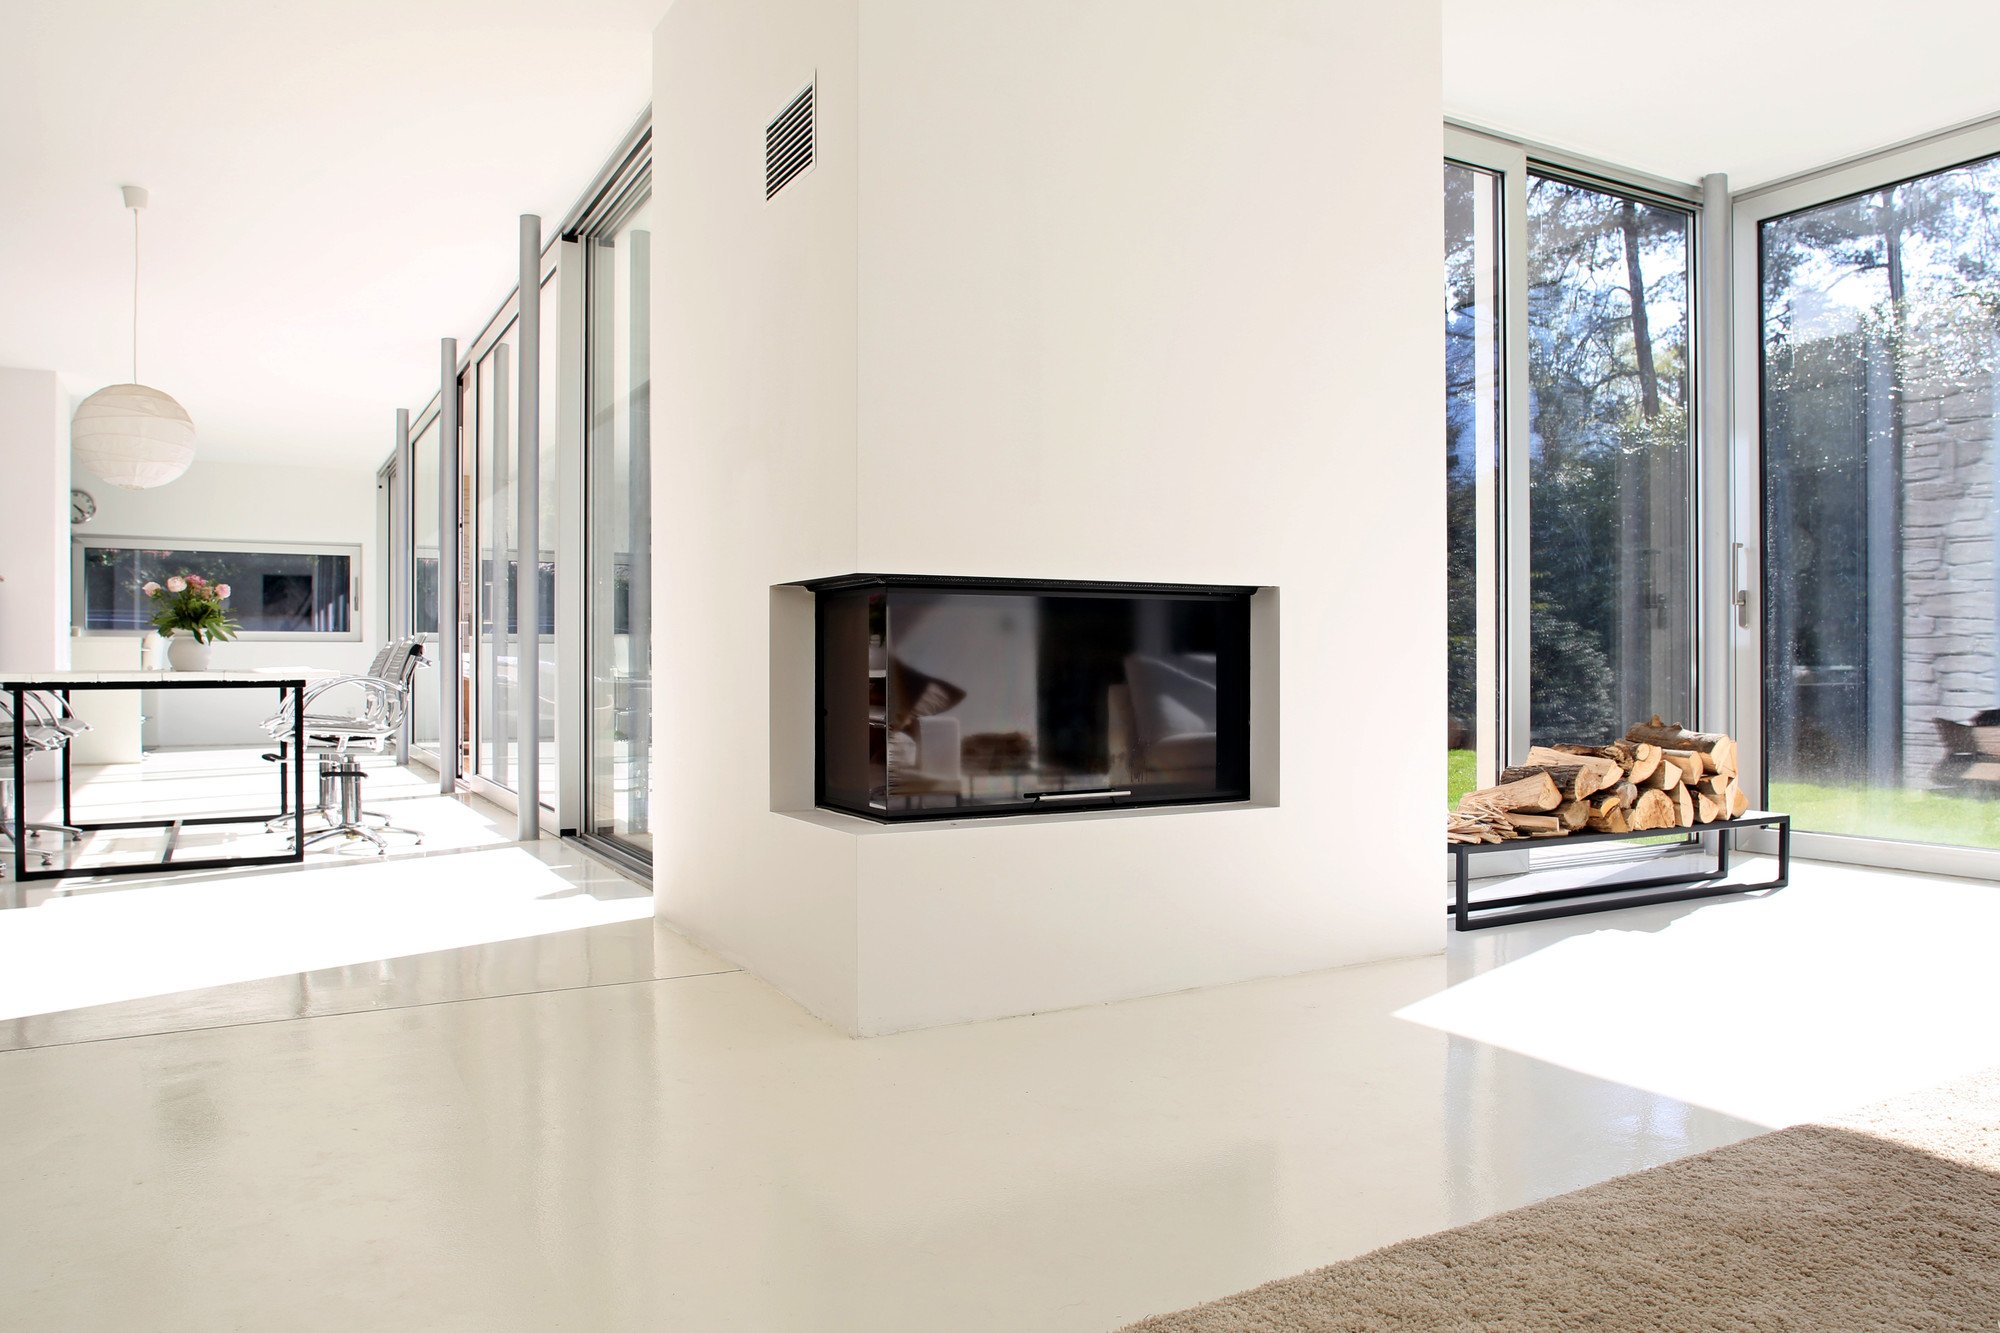 Fire place with safety glass